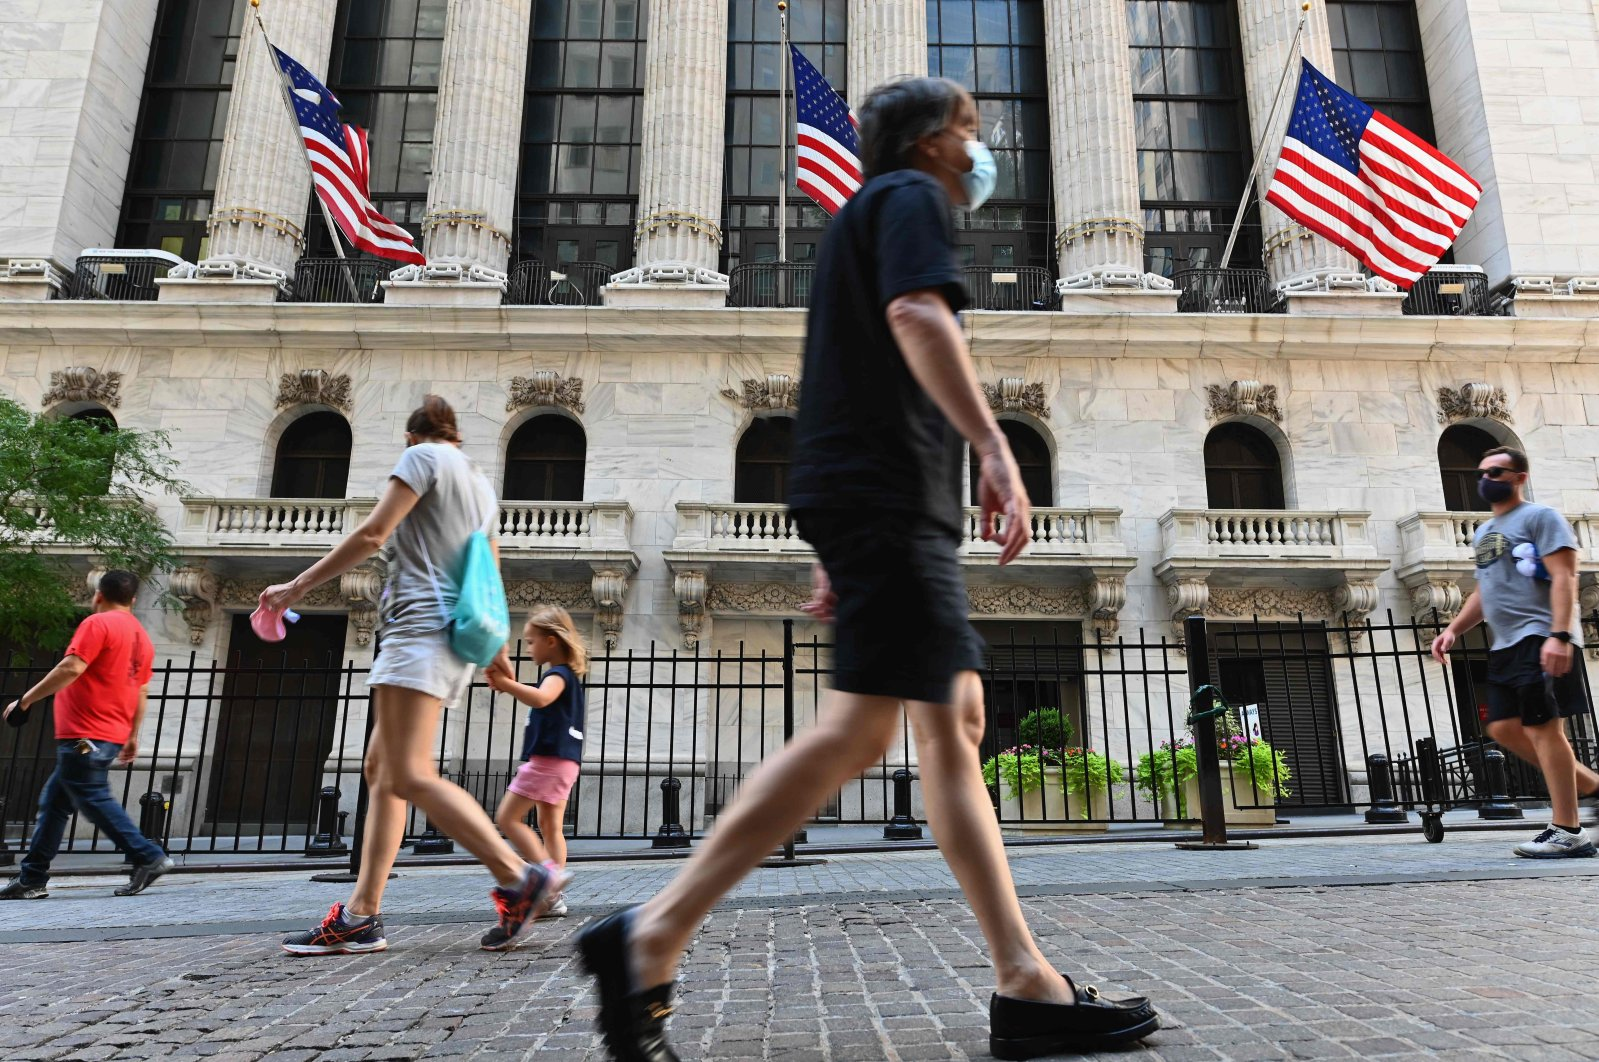 People pass by the New York Stock Exchange (NYSE) at Wall Street in New York City, Aug. 3, 2020. (AFP Photo)